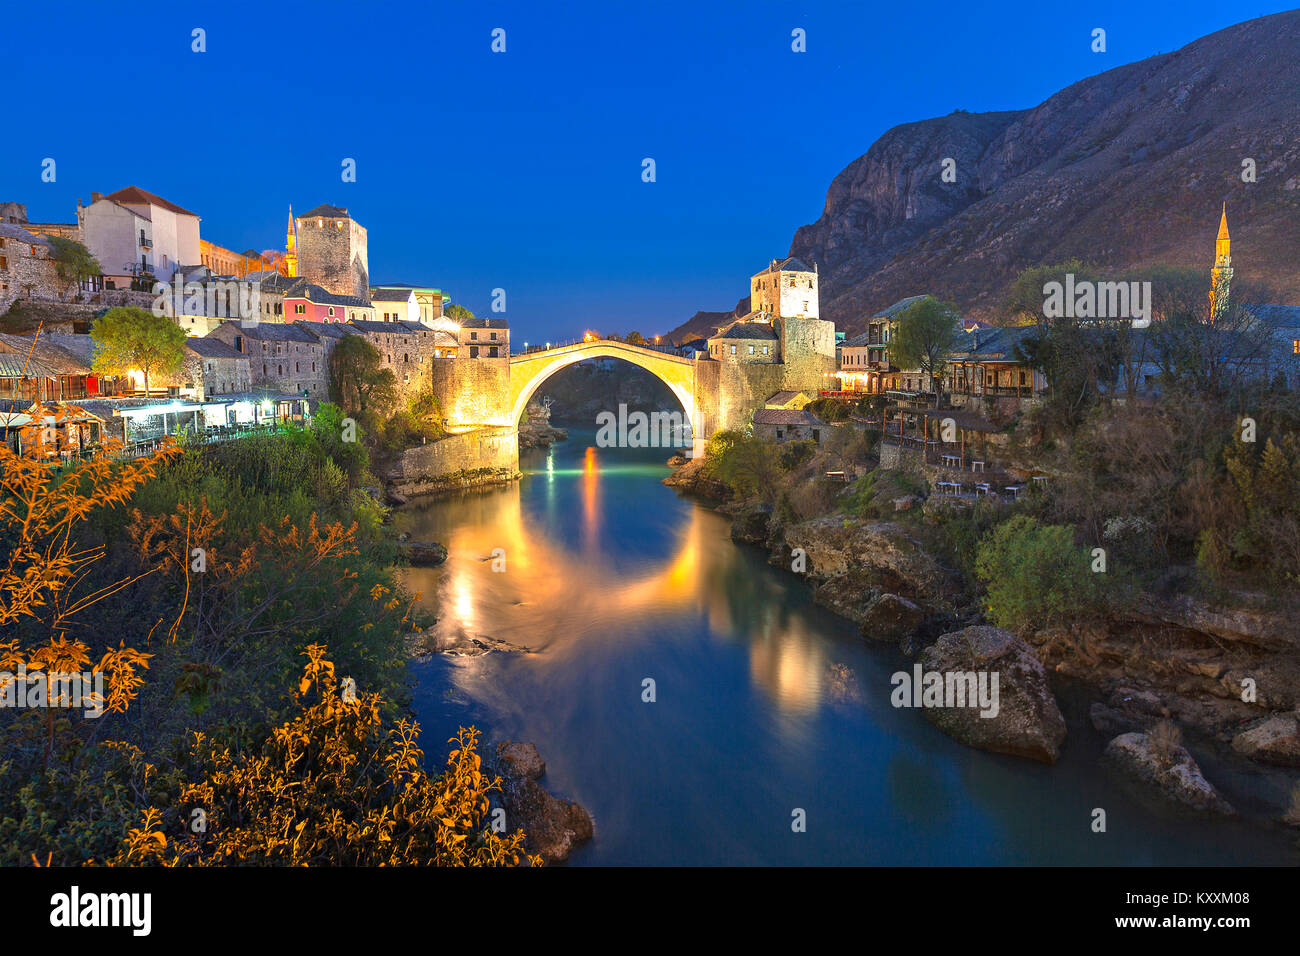 View over the Mostar Bridge and the city at night, Mostar, Bosnia and Herzegovina. - Stock Image